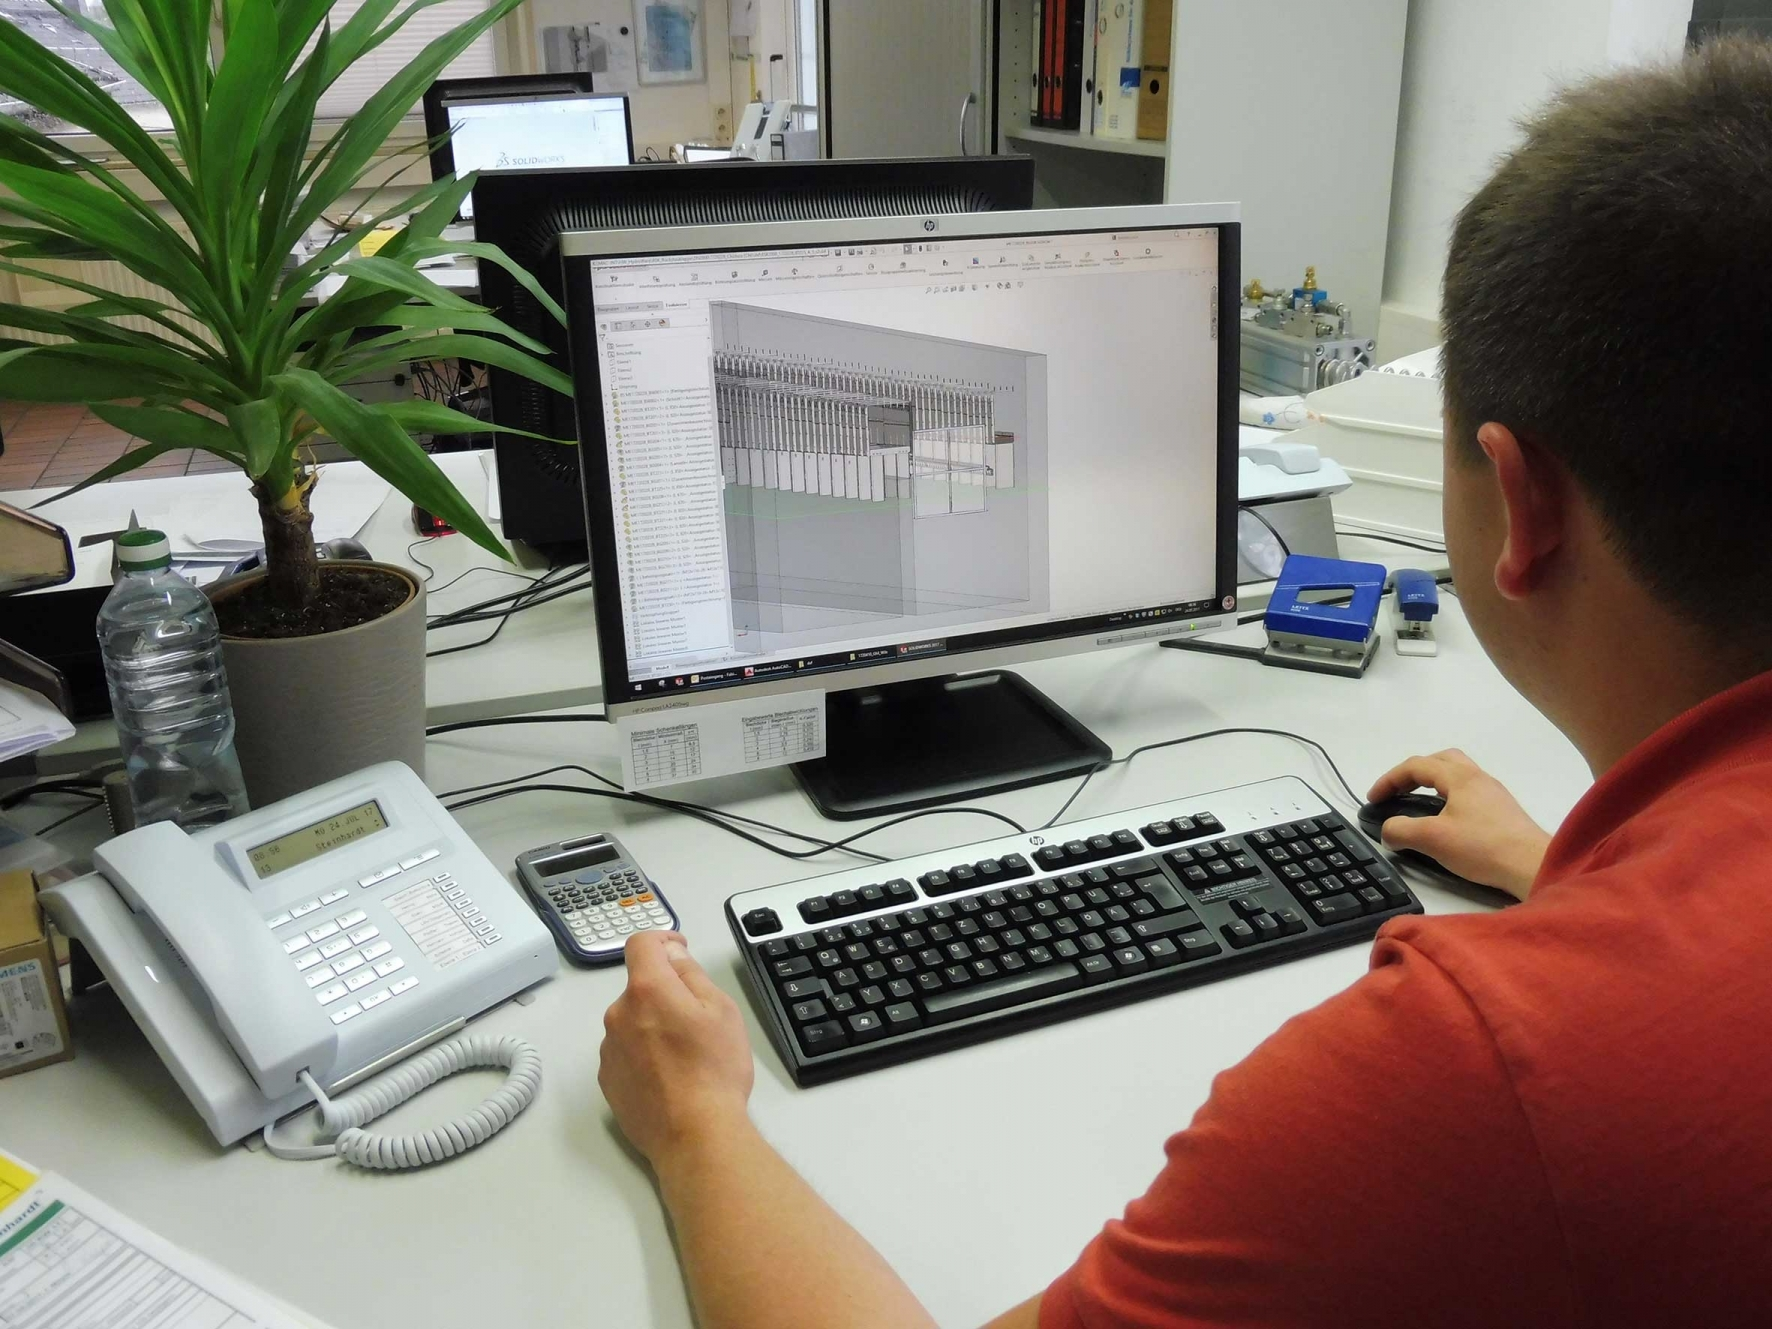 On-site production facilitates an effective, flexible workflow and manufacturing process